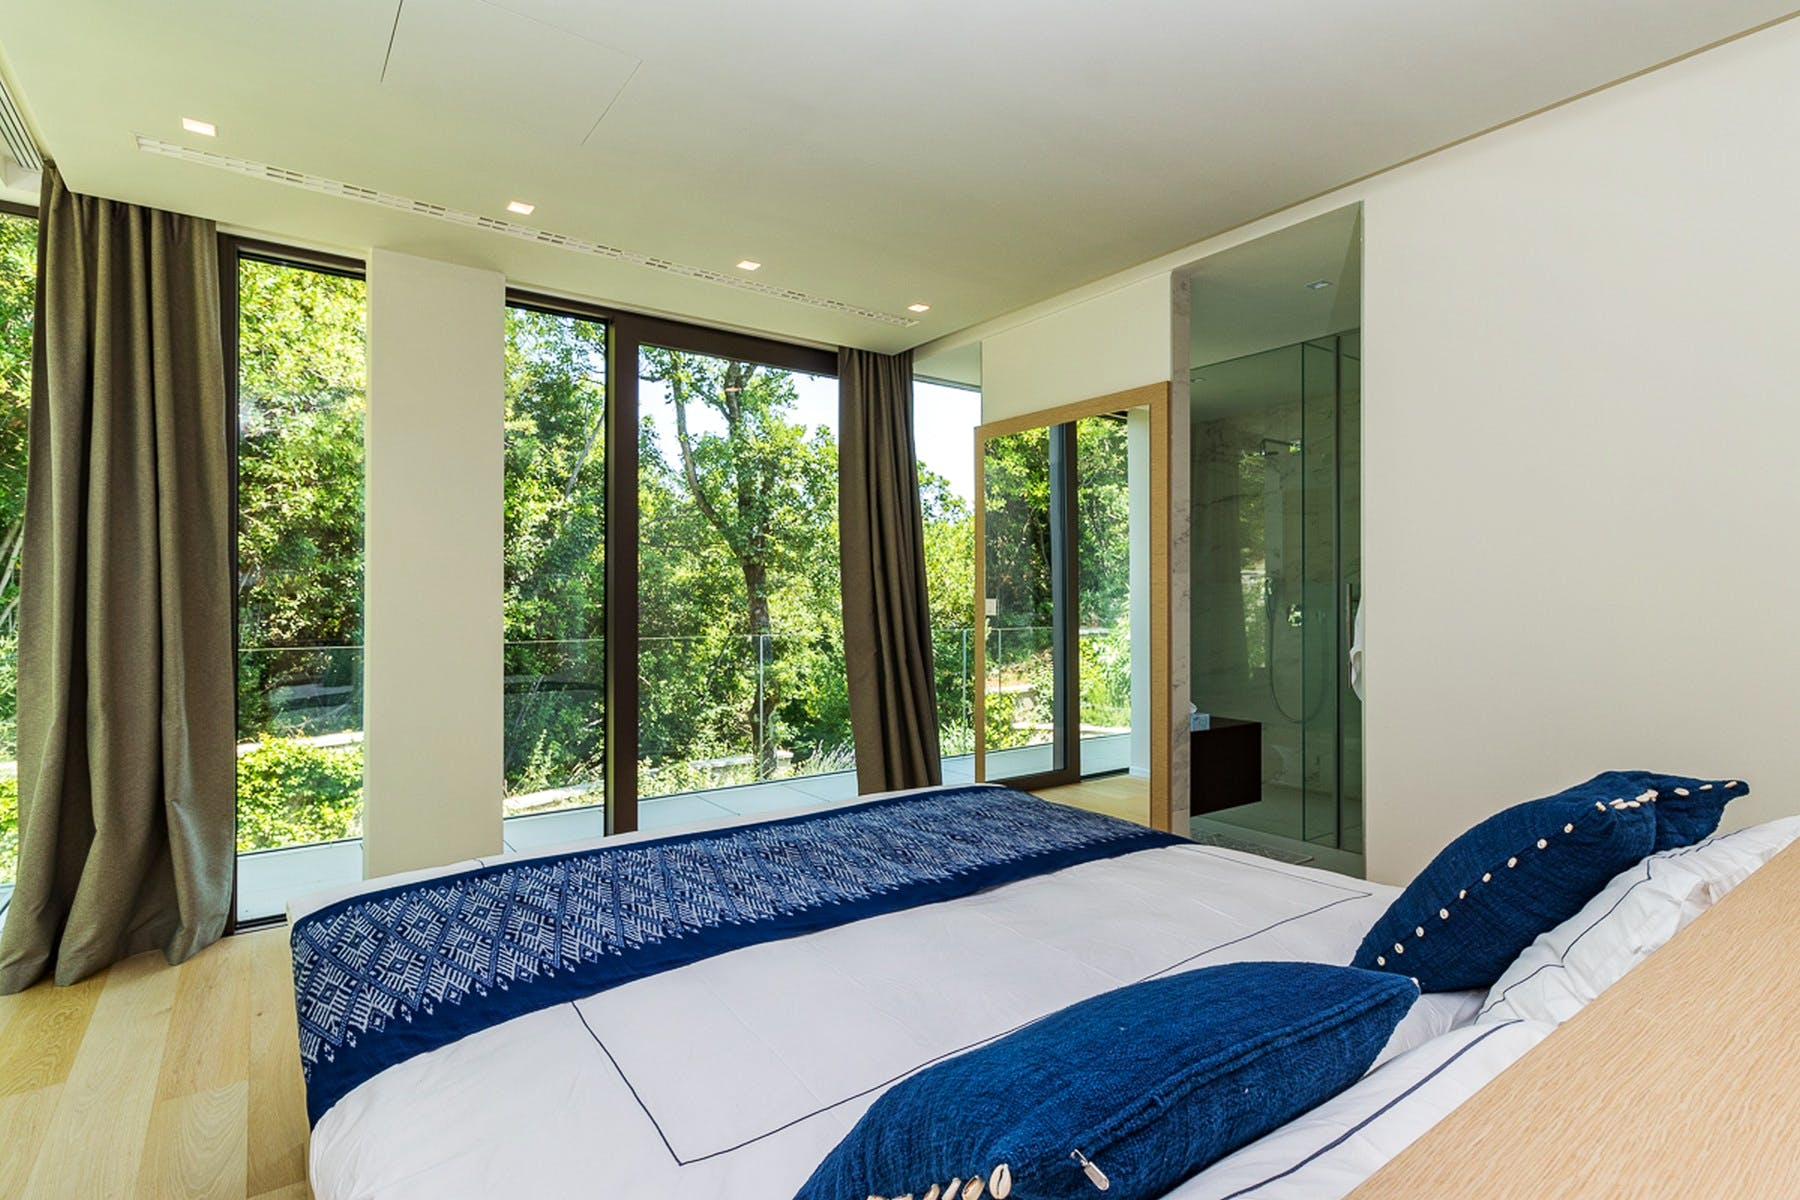 Bedroom with a forest view